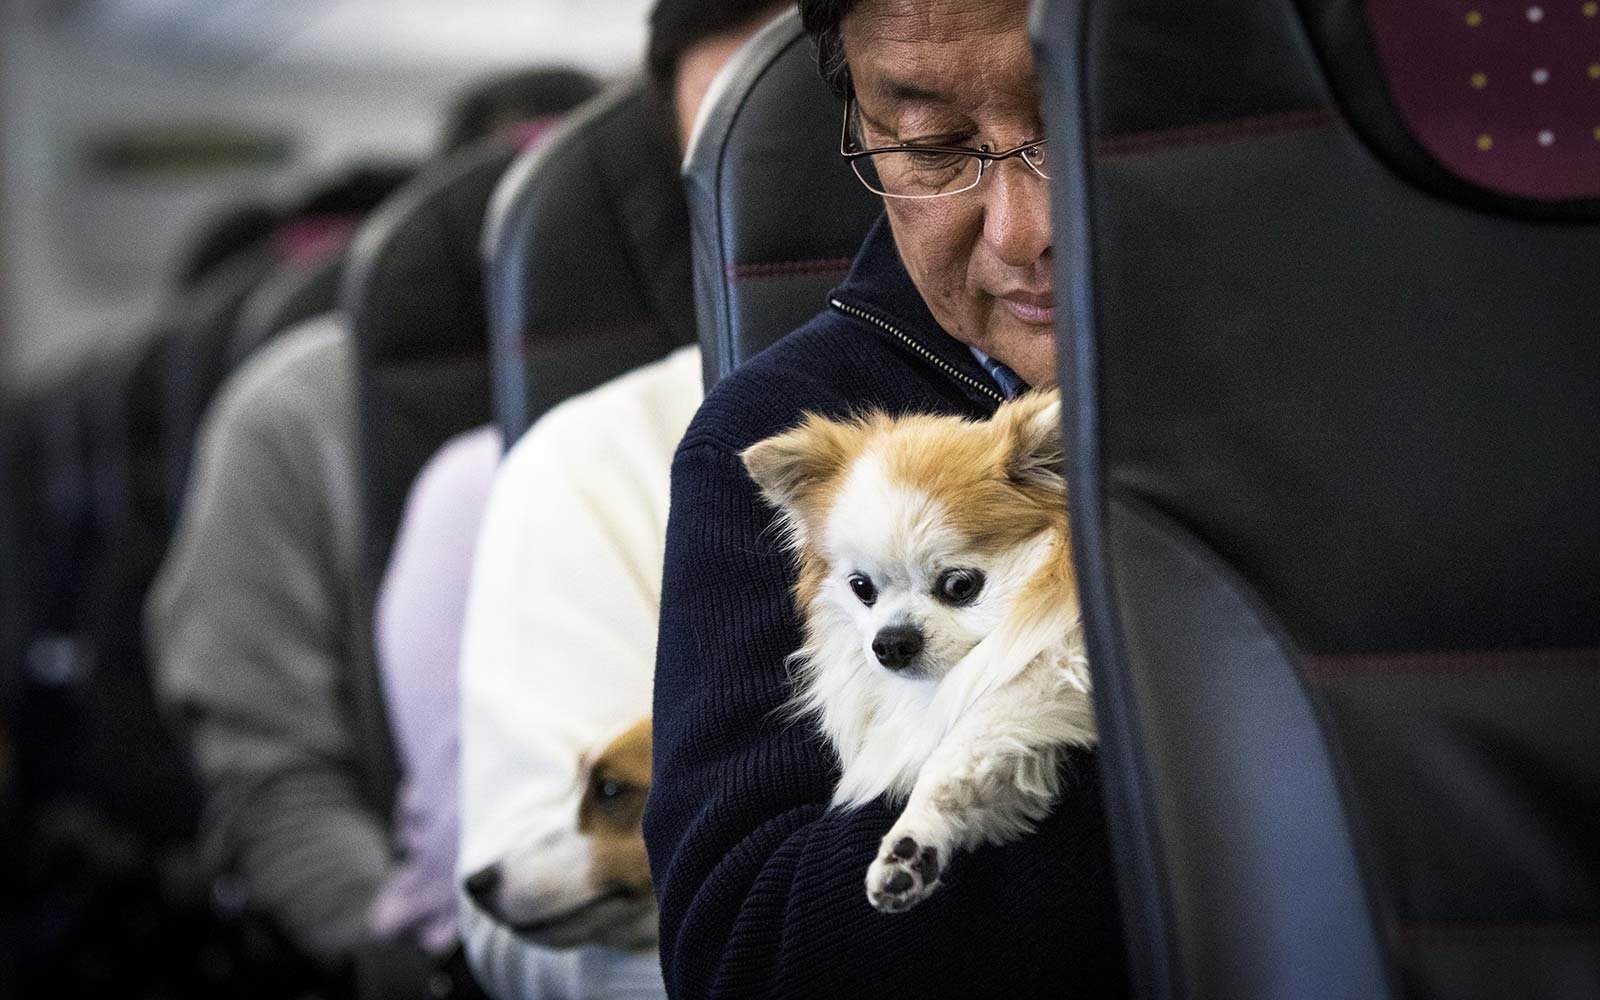 Cute dog airplane passenger